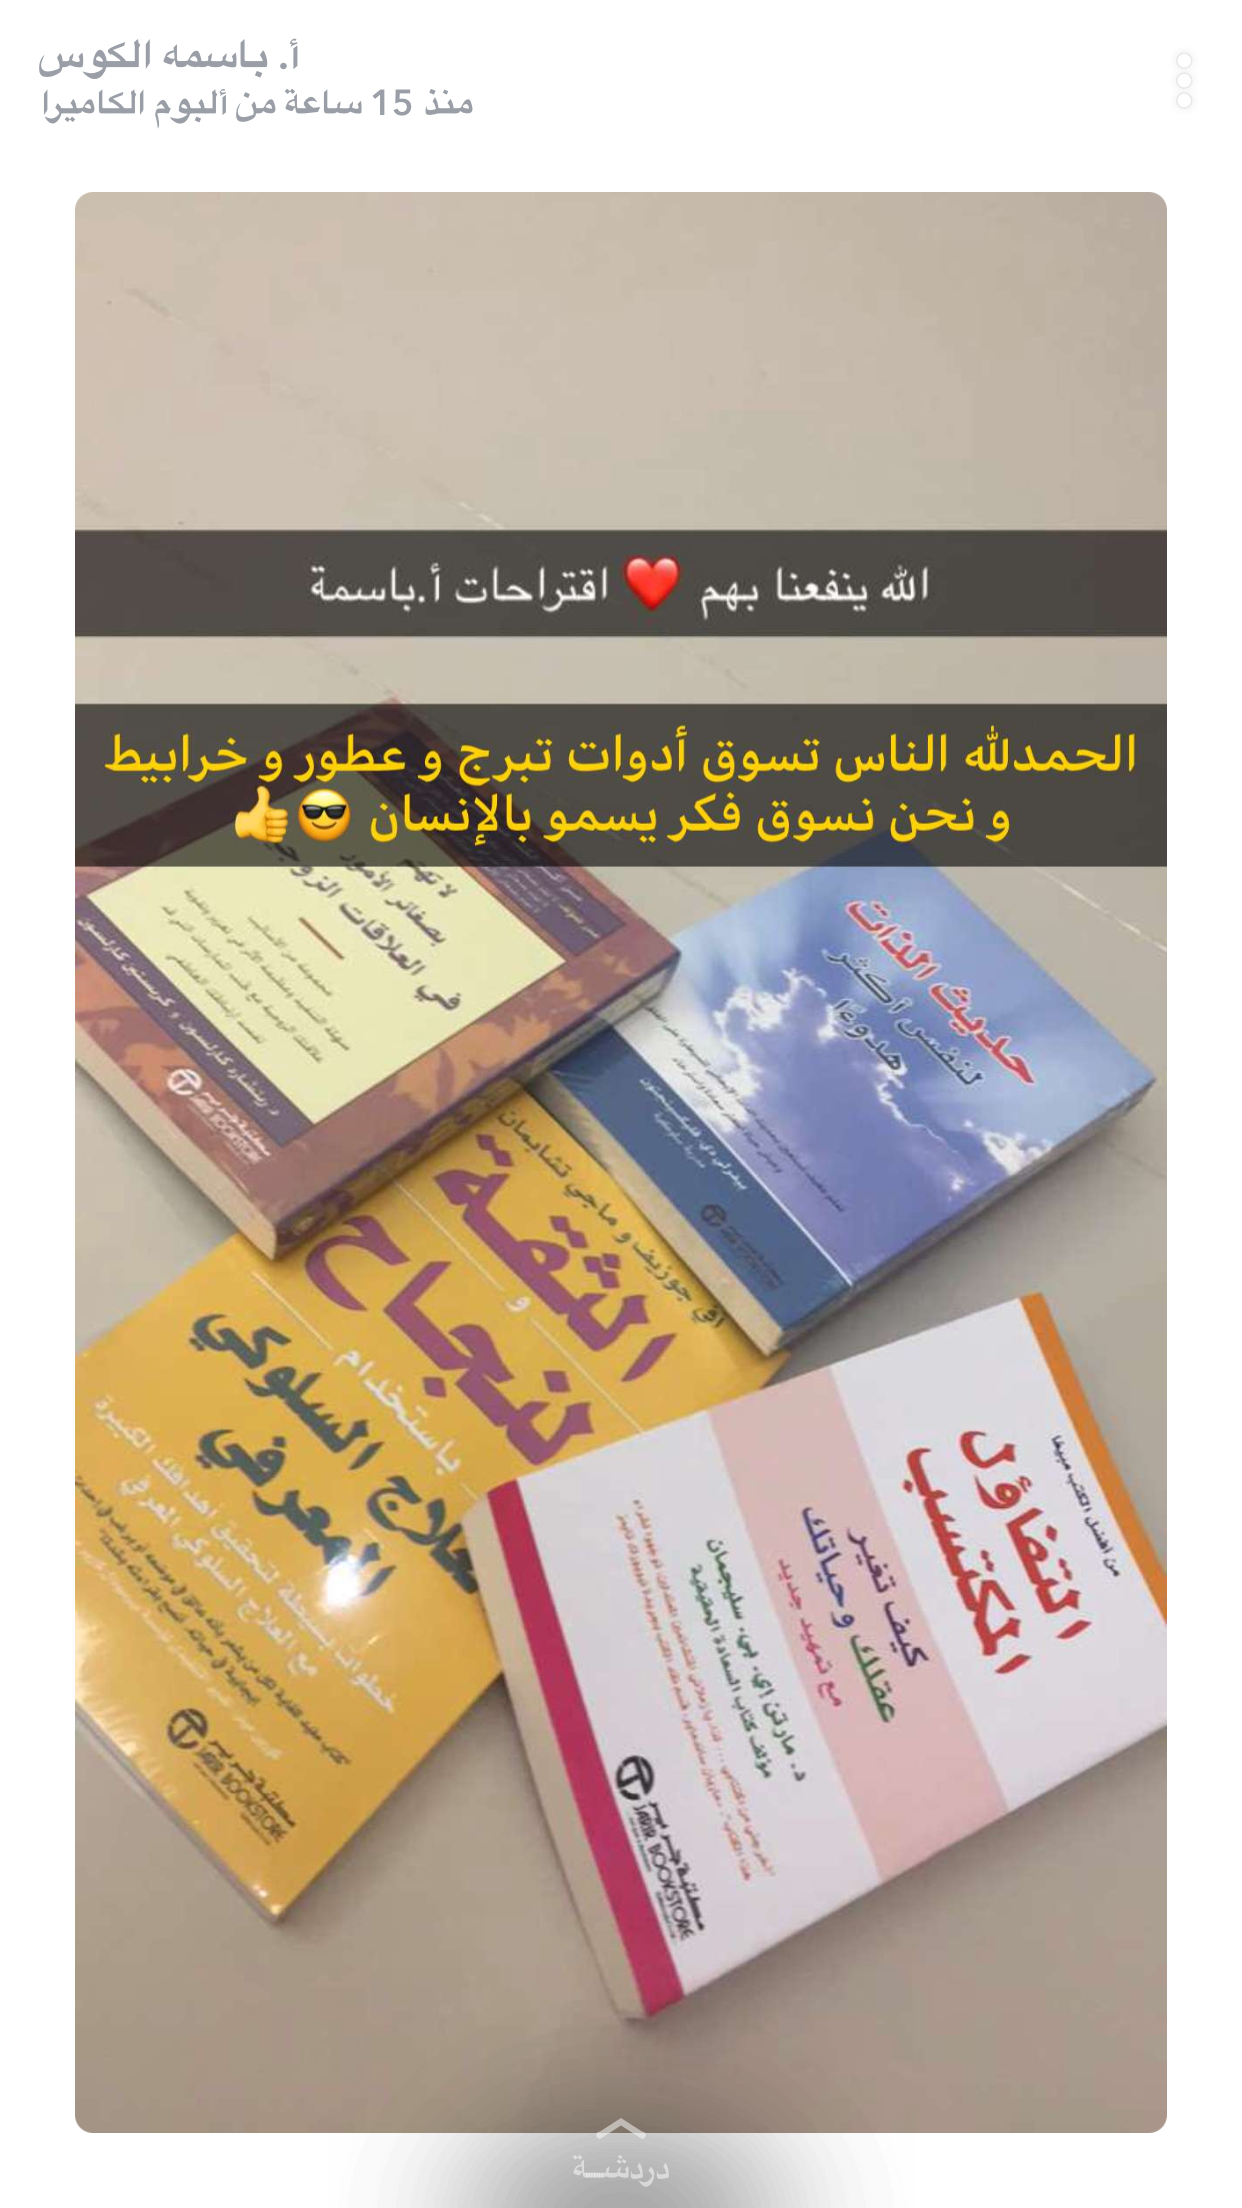 Pin By Reem On كتب Arabic Books Books To Read Positive Words